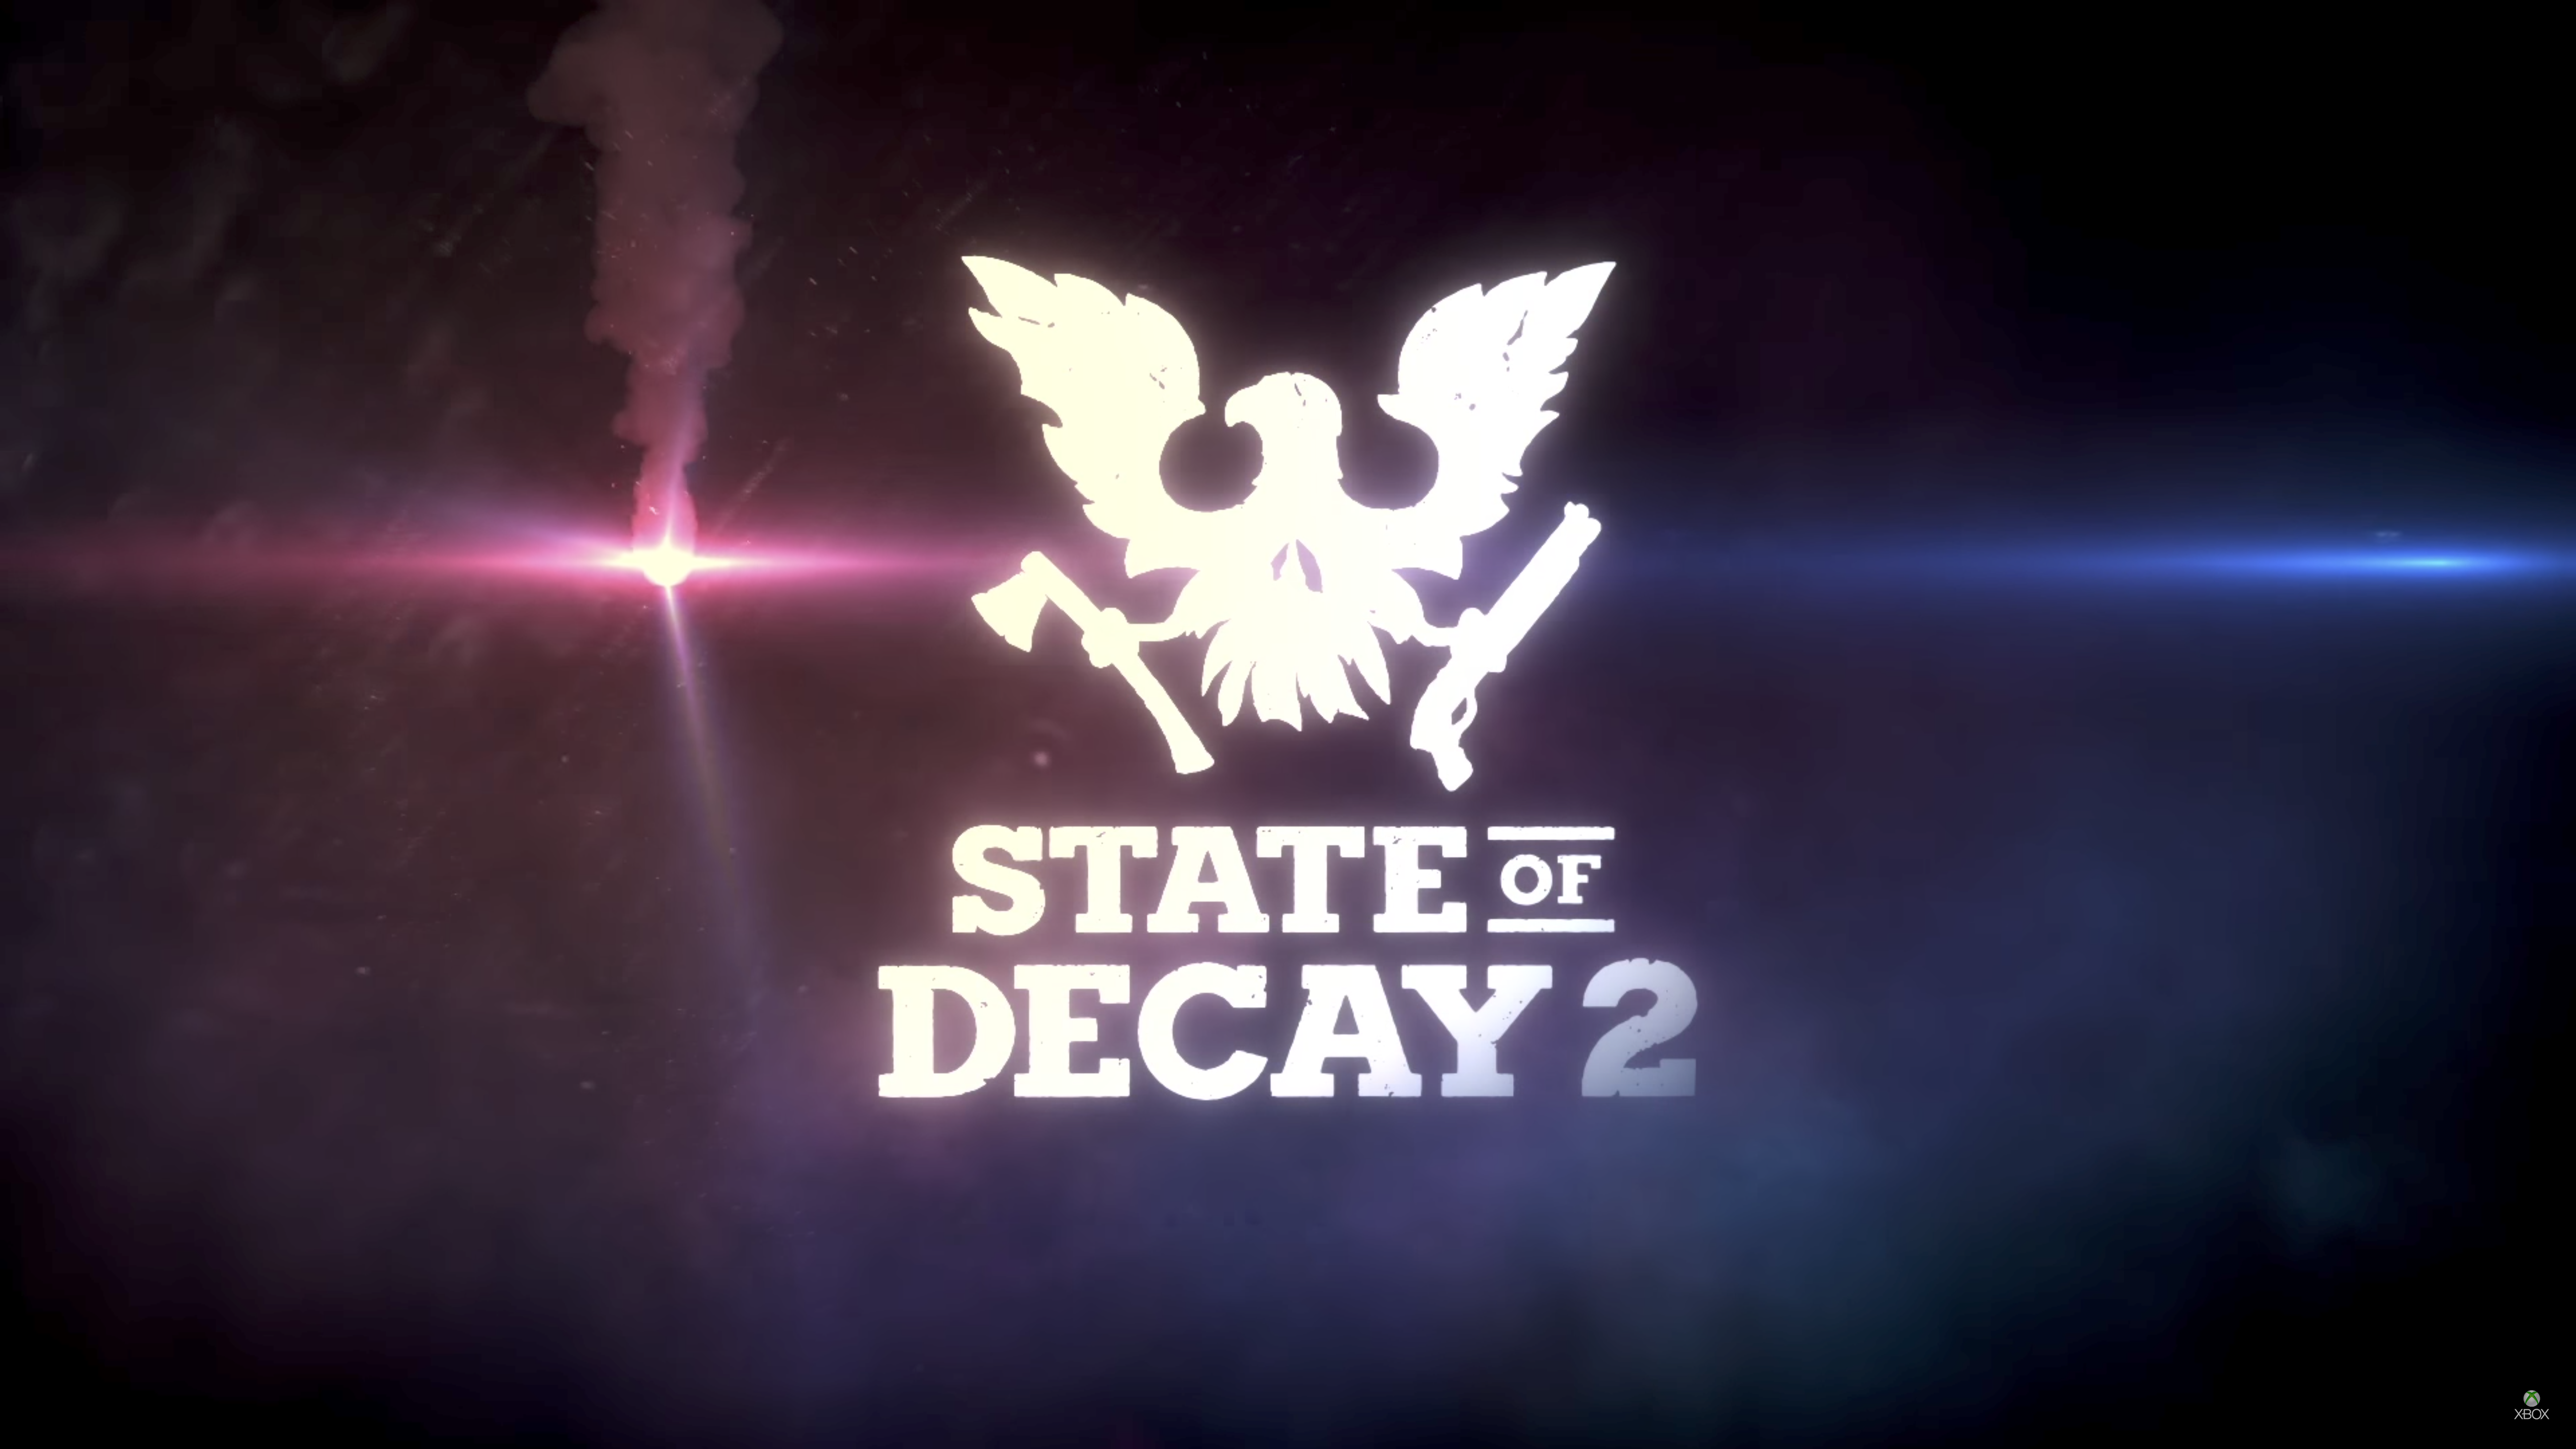 PC Configuration Requirements for State of Decay 2 Released